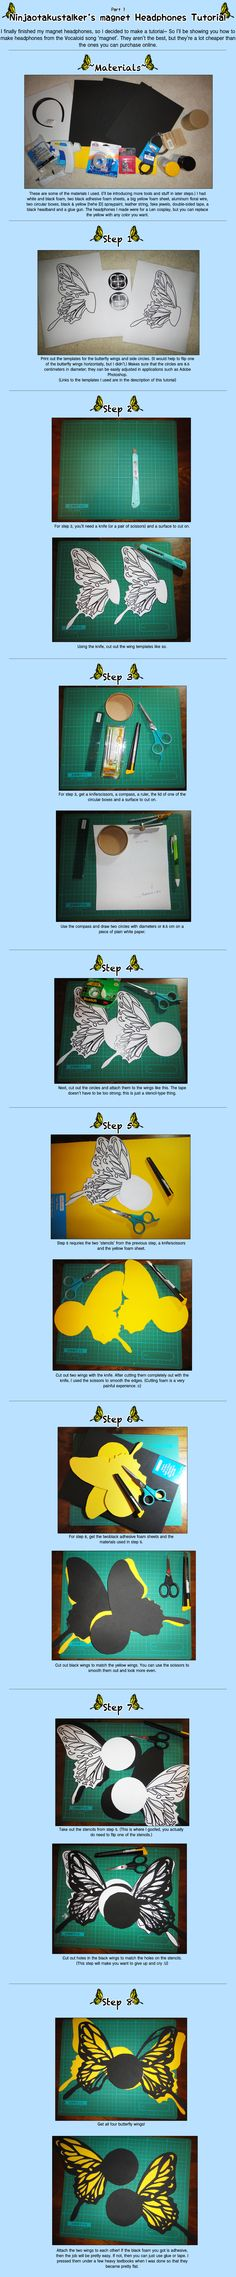 magnet Headphones Tutorial Part 1 by Ninjaotakustalker.deviantart.com on @deviantART